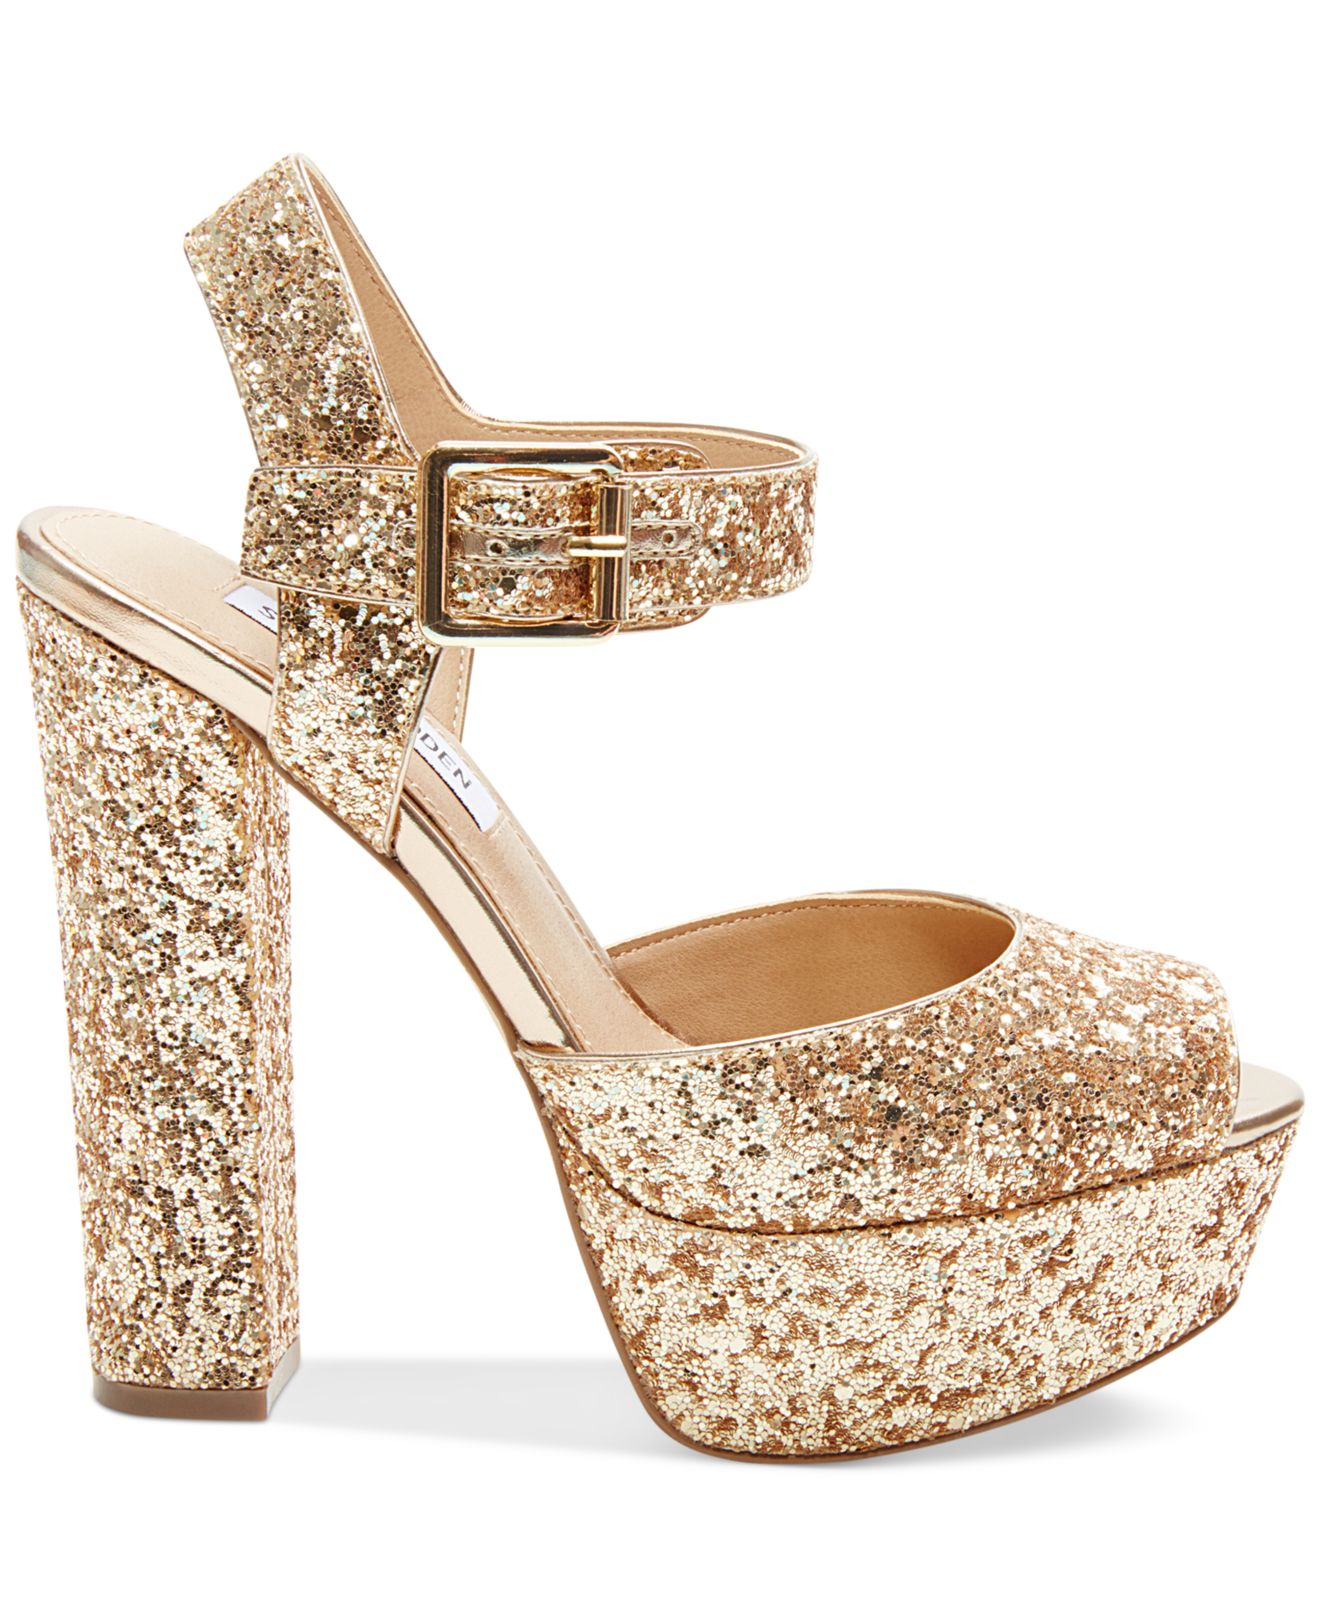 d8604838d6b Lyst - Steve Madden Jillyy Two-piece Platform Dress Sandals in Metallic